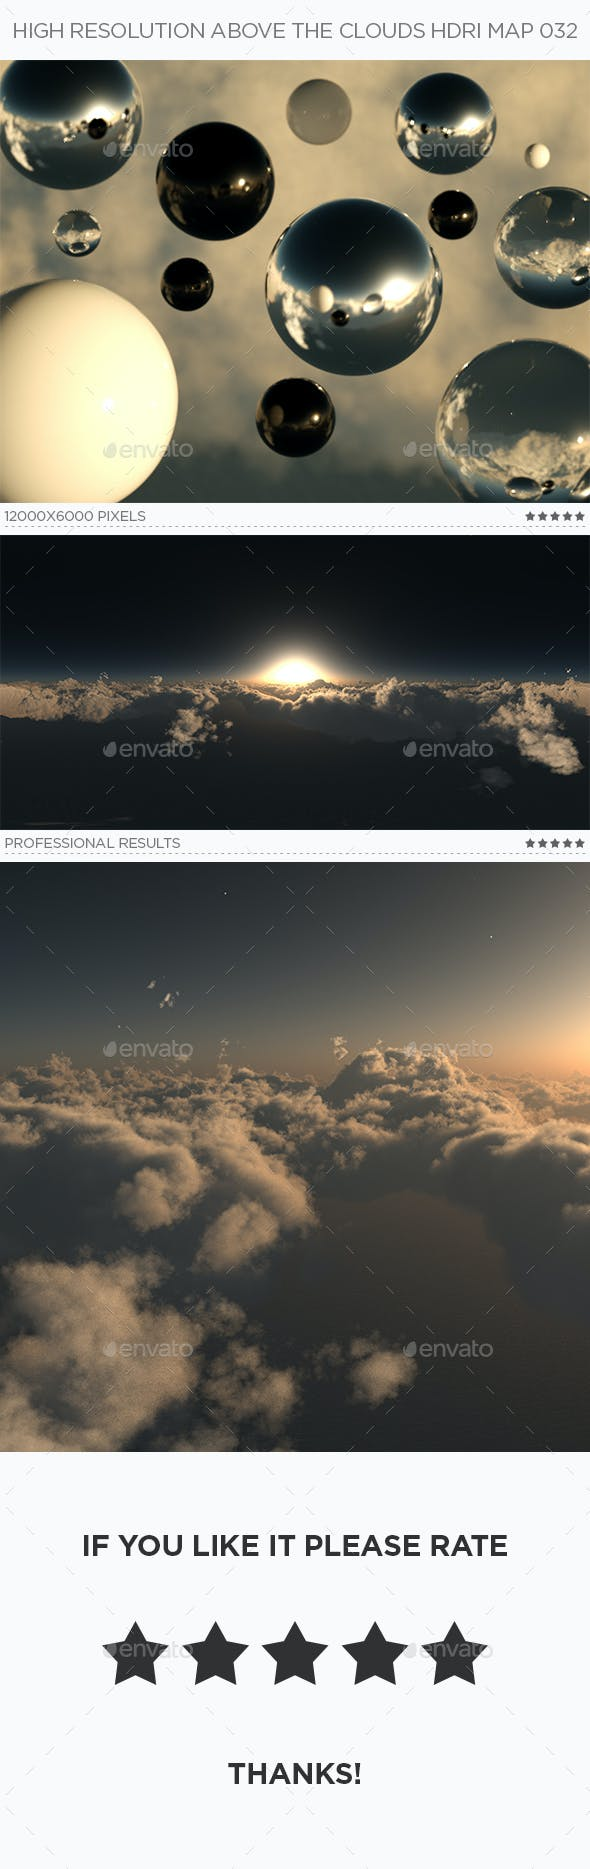 High Resolution Above The Clouds HDRi Map 032 - 3DOcean Item for Sale